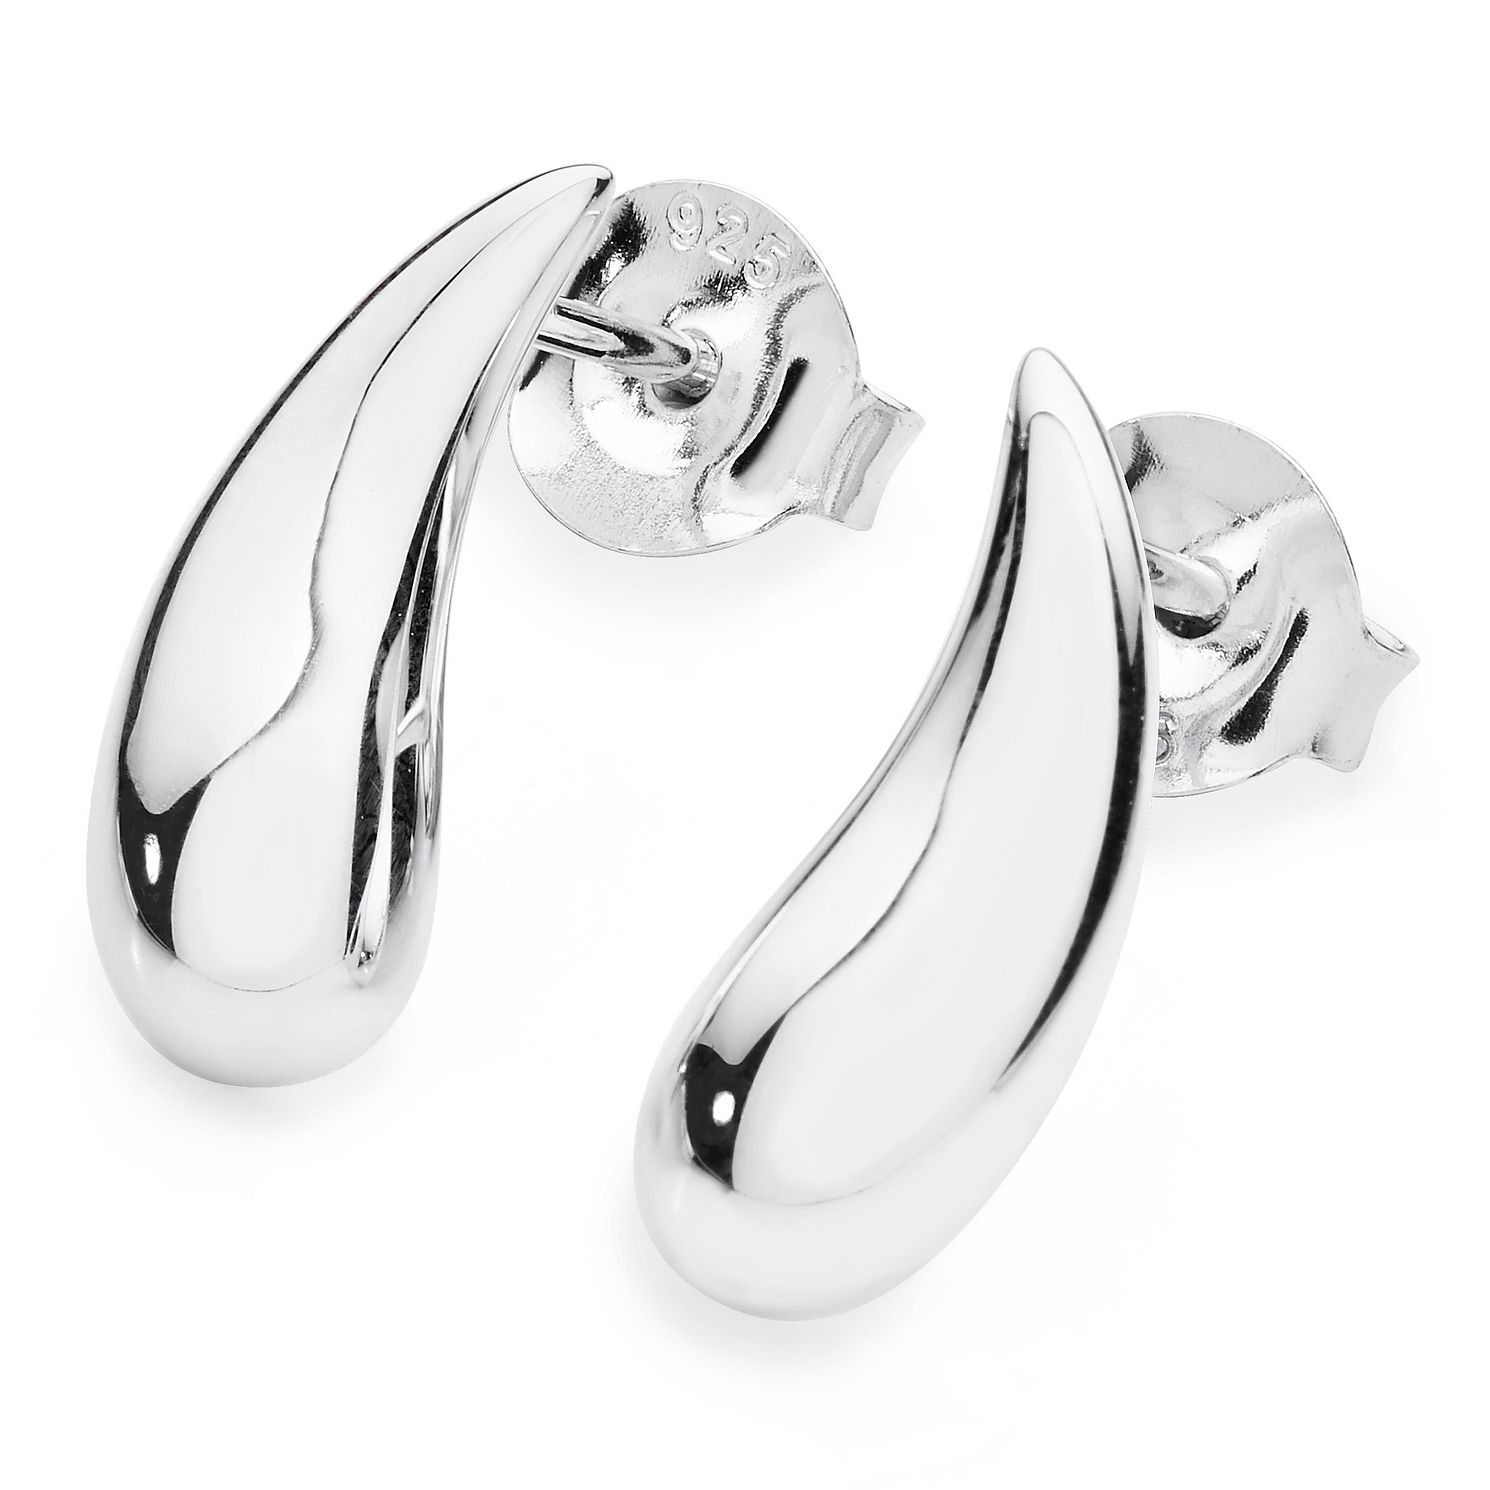 Lucy Quartermaine Silver 925 Droplet Stud Earrings - Product number 1376314